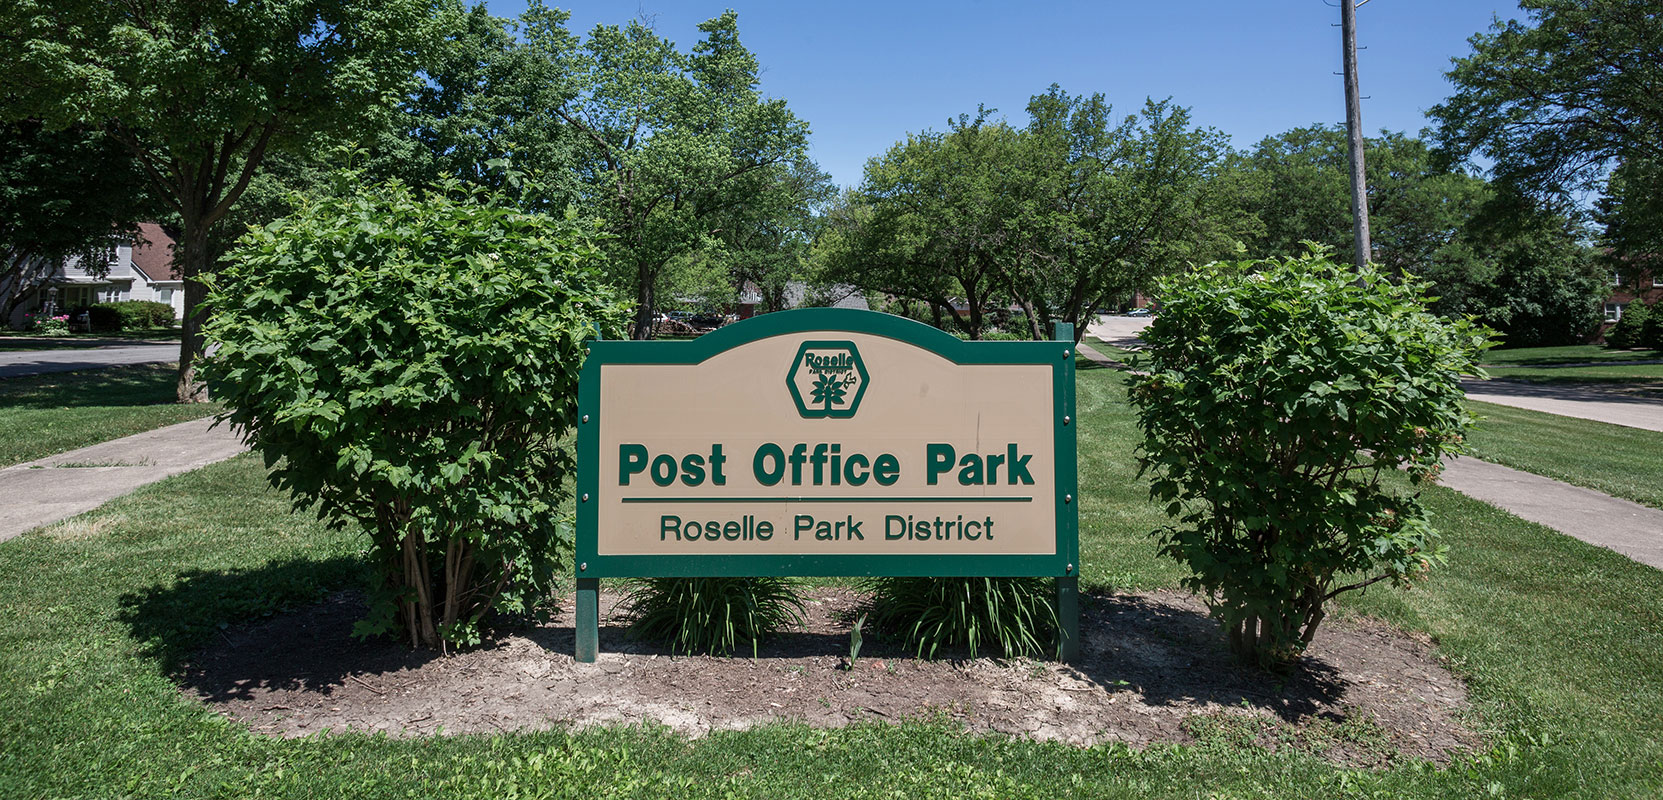 Post Office Park